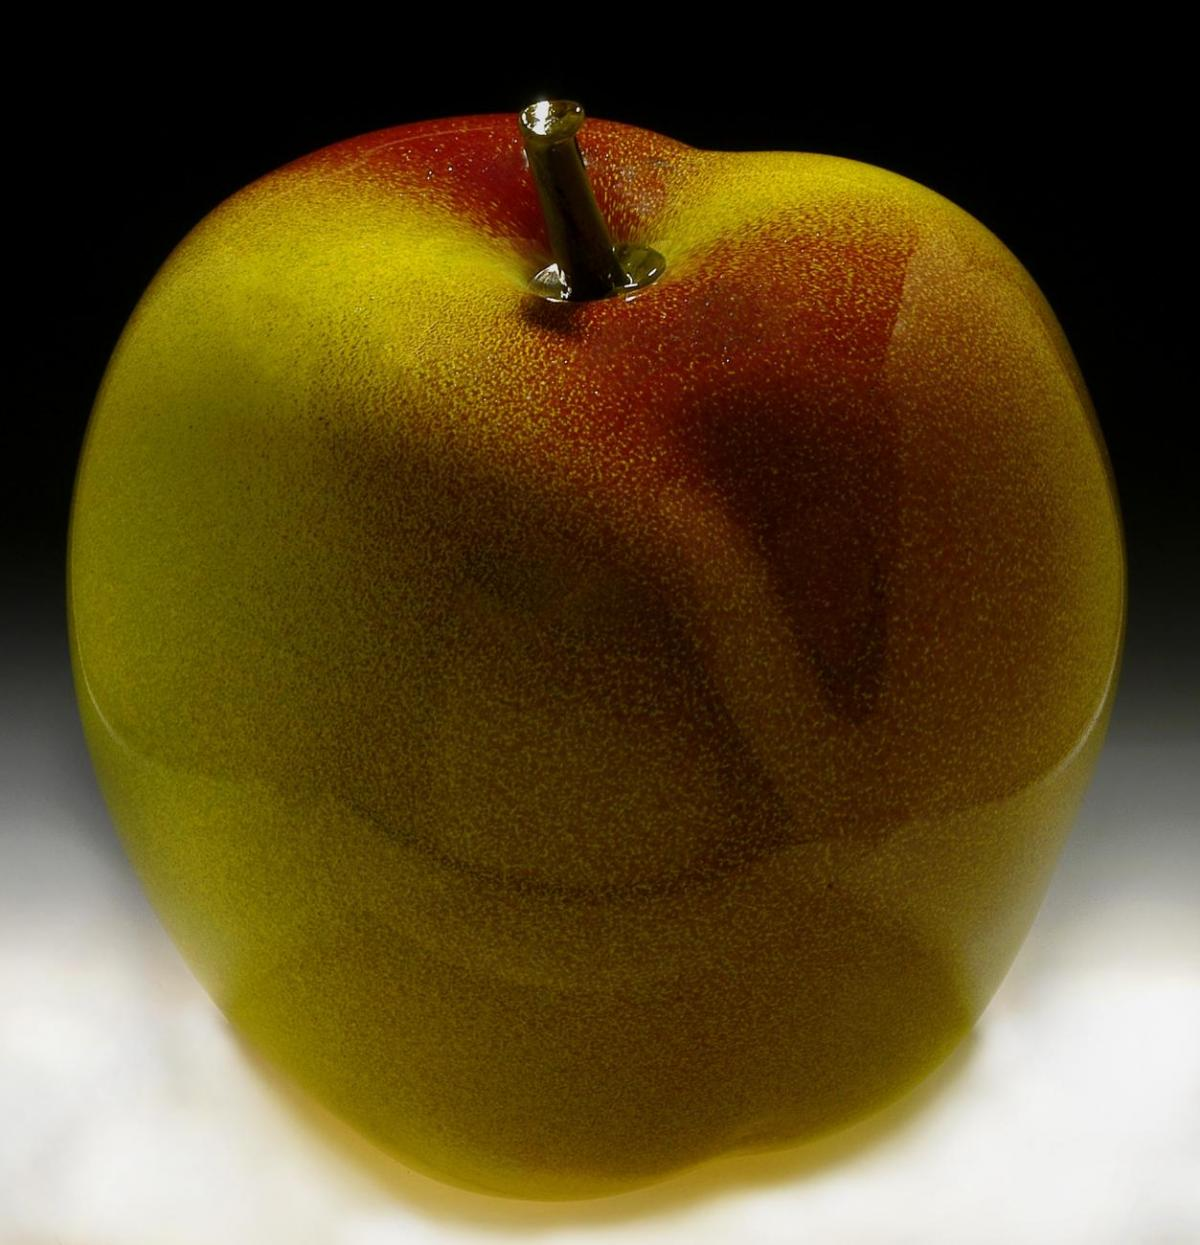 A photograph of a large apple made of glass.